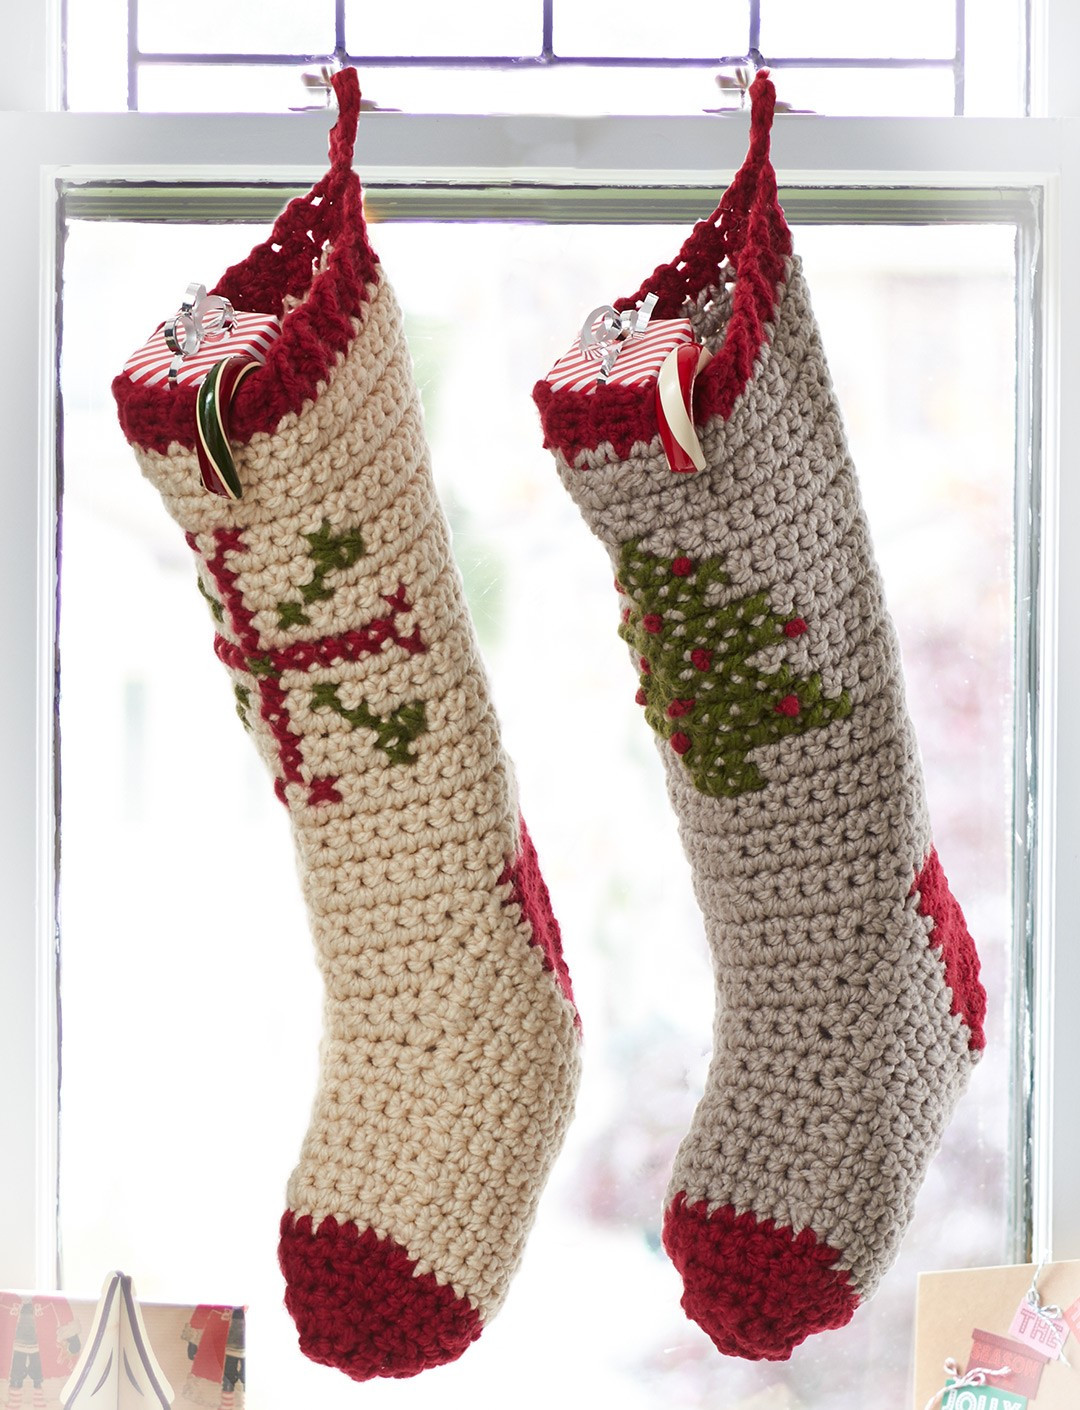 Inspirational Bernat Cross Stitch Stockings Crochet Pattern Crochet Pattern for Christmas Stocking Of Best Of Crochet Christmas Stockings B Hooked Crochet Crochet Pattern for Christmas Stocking